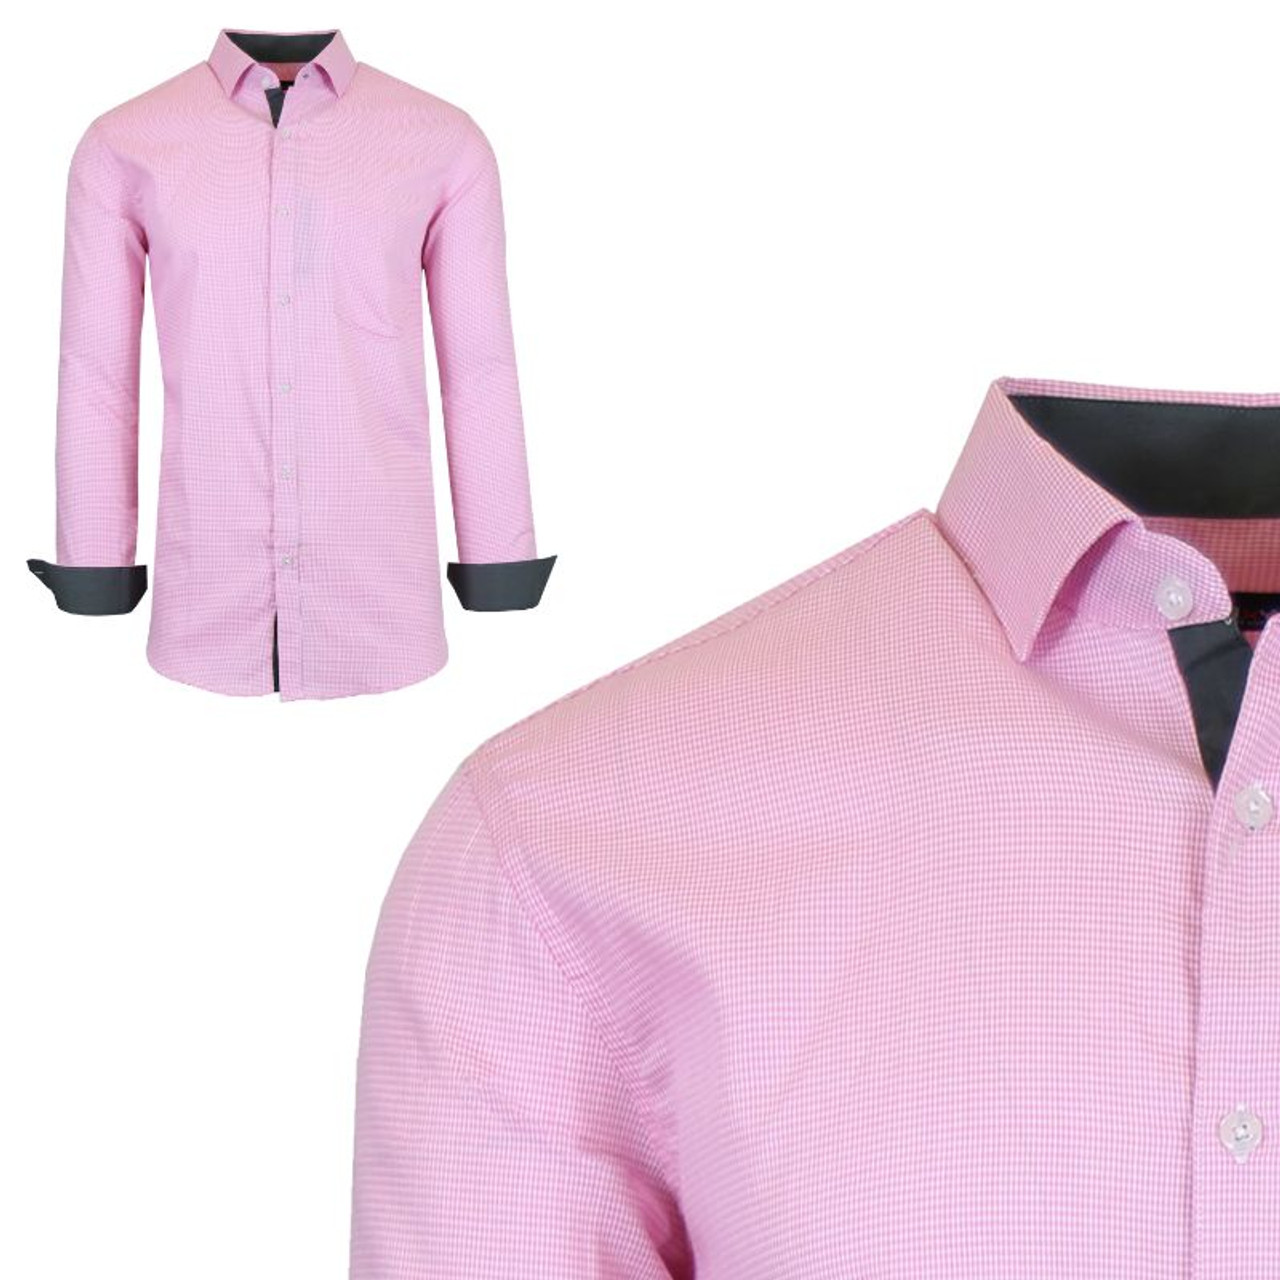 Men's Long Sleeve Slim-Fit Cotton Dress Shirts with Chest Pocket